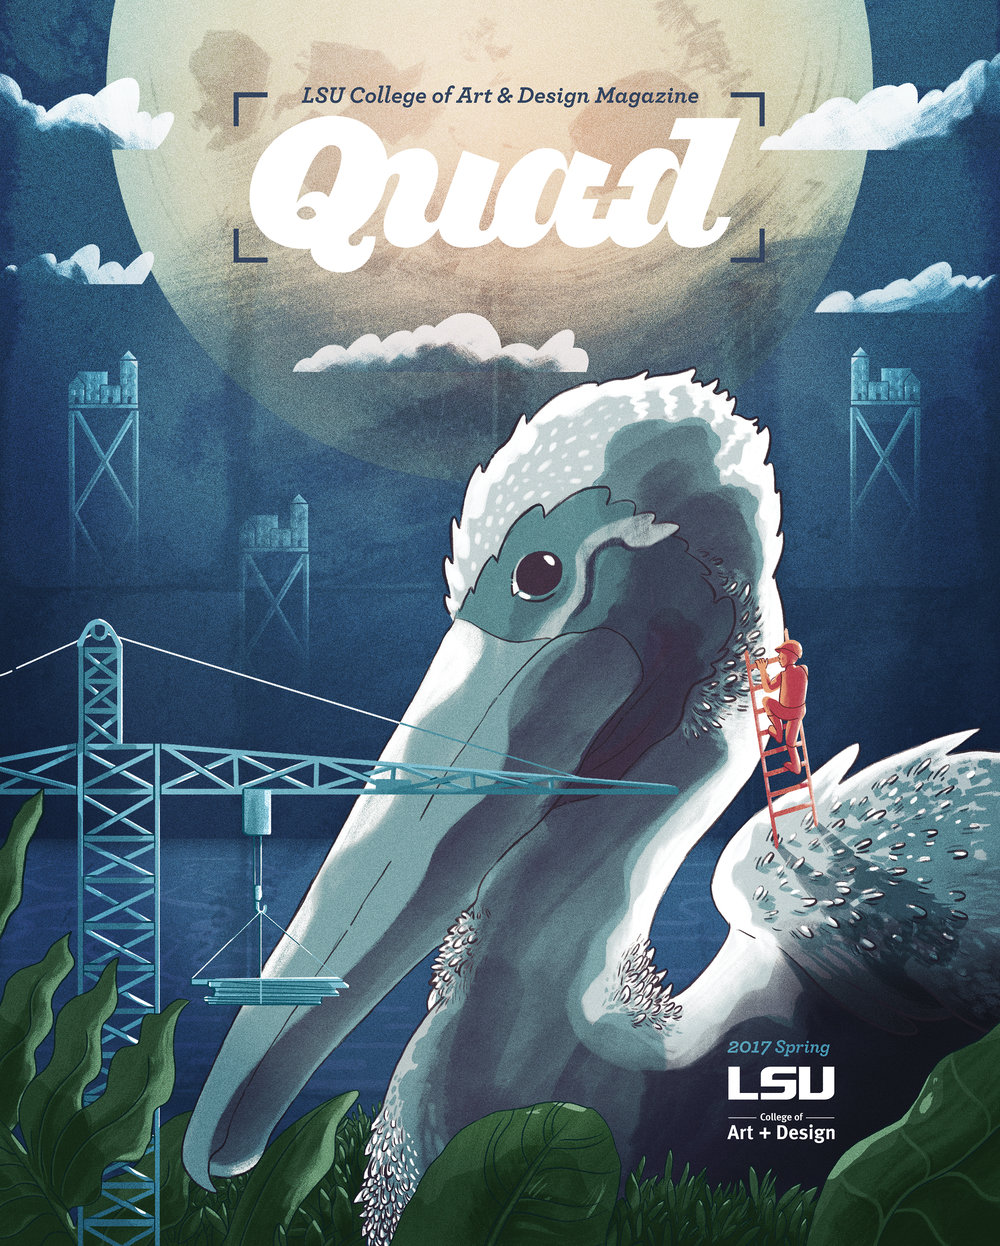 Quad cover - LSU's College of Art and Design produces Quad, which is a magazine for alumni of the college. Louisiana faced some of the worst flooding in its history so the challenge for the cover was to symbolize moving forward and rebuilding, using the state bird as iconography.